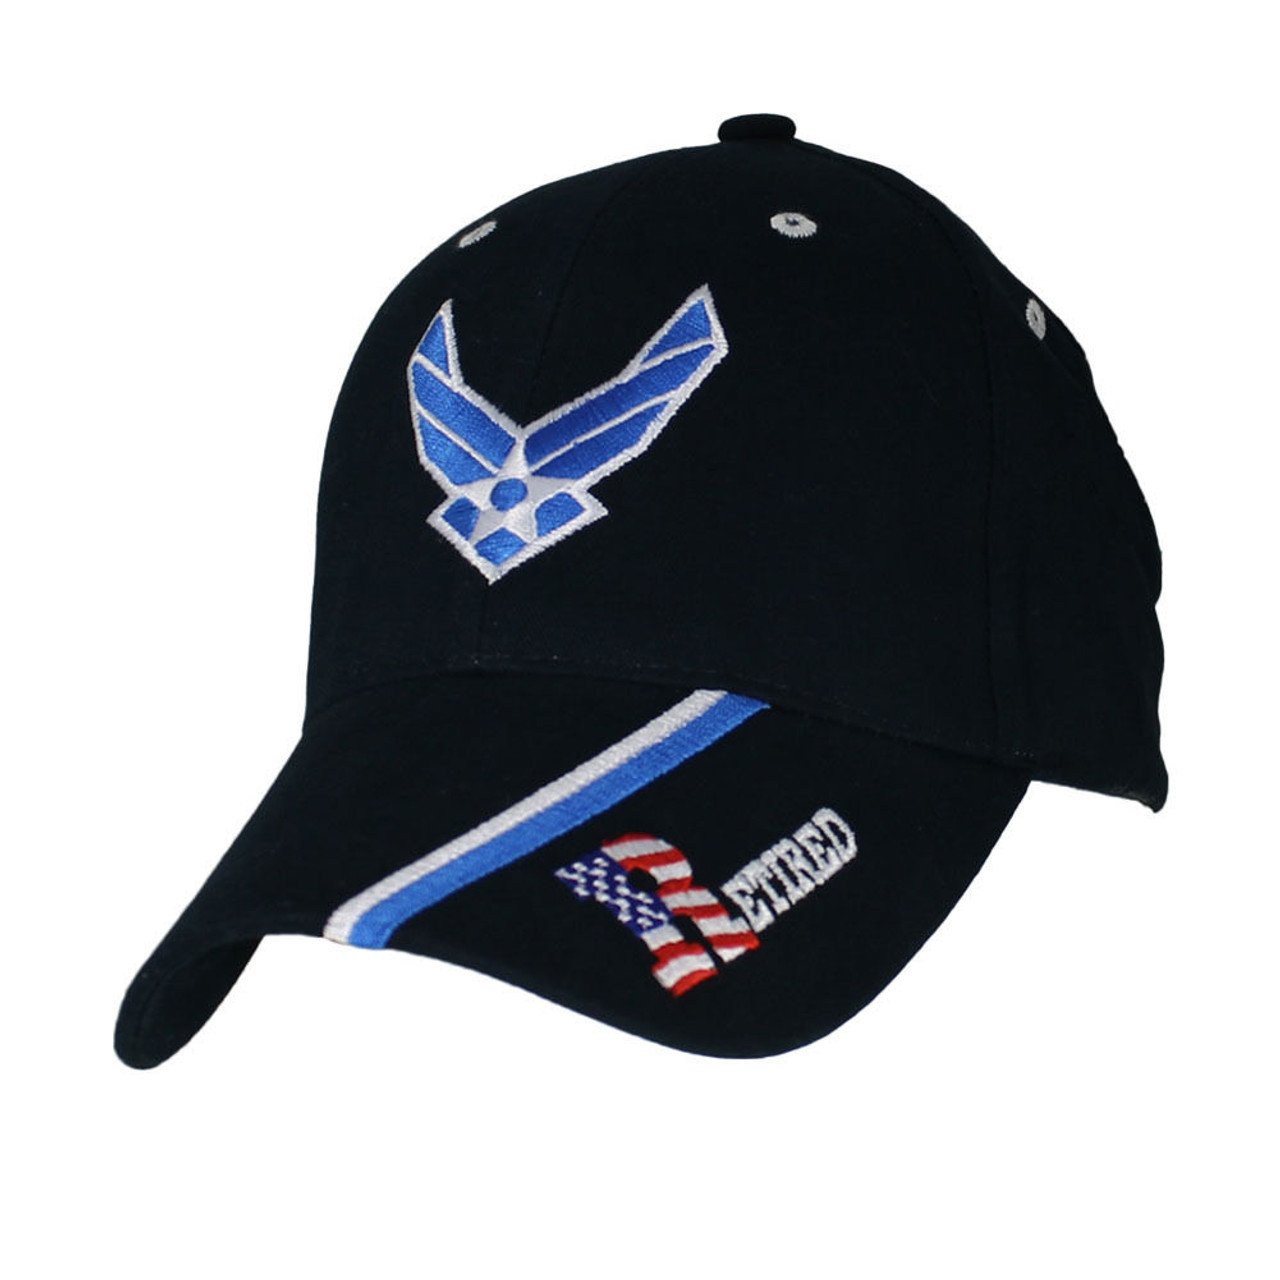 6621 - U.S. Air Force Retired Cap - Cotton - Dark Blue - USMILITARYHATS.COM 12de0cdb40d4